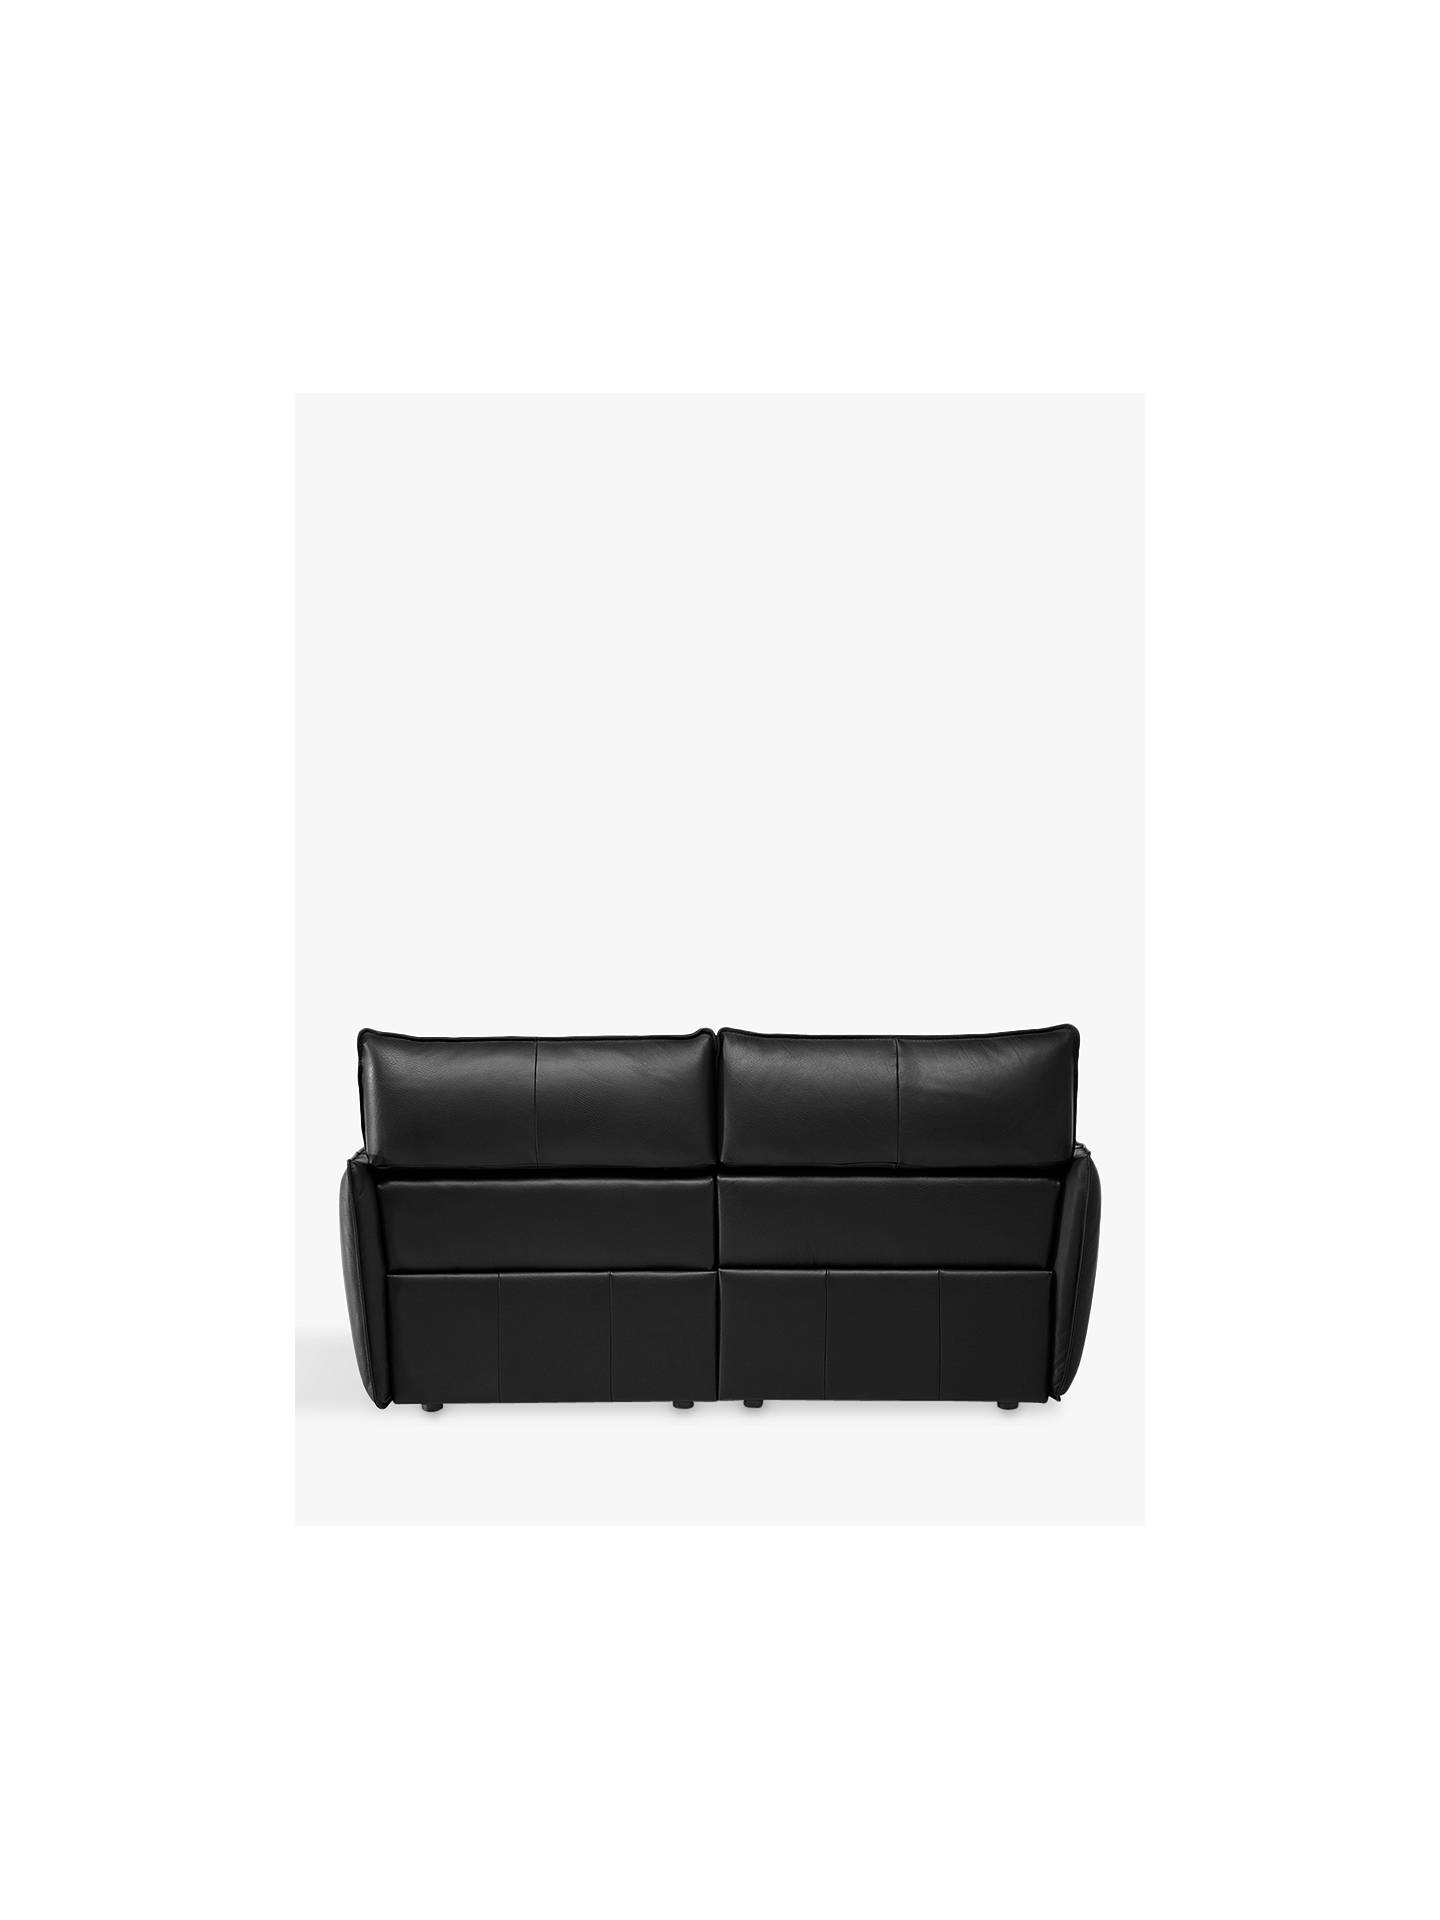 Sensational Natuzzi Stupore 193 Leather Loveseat With Power Motion At Caraccident5 Cool Chair Designs And Ideas Caraccident5Info